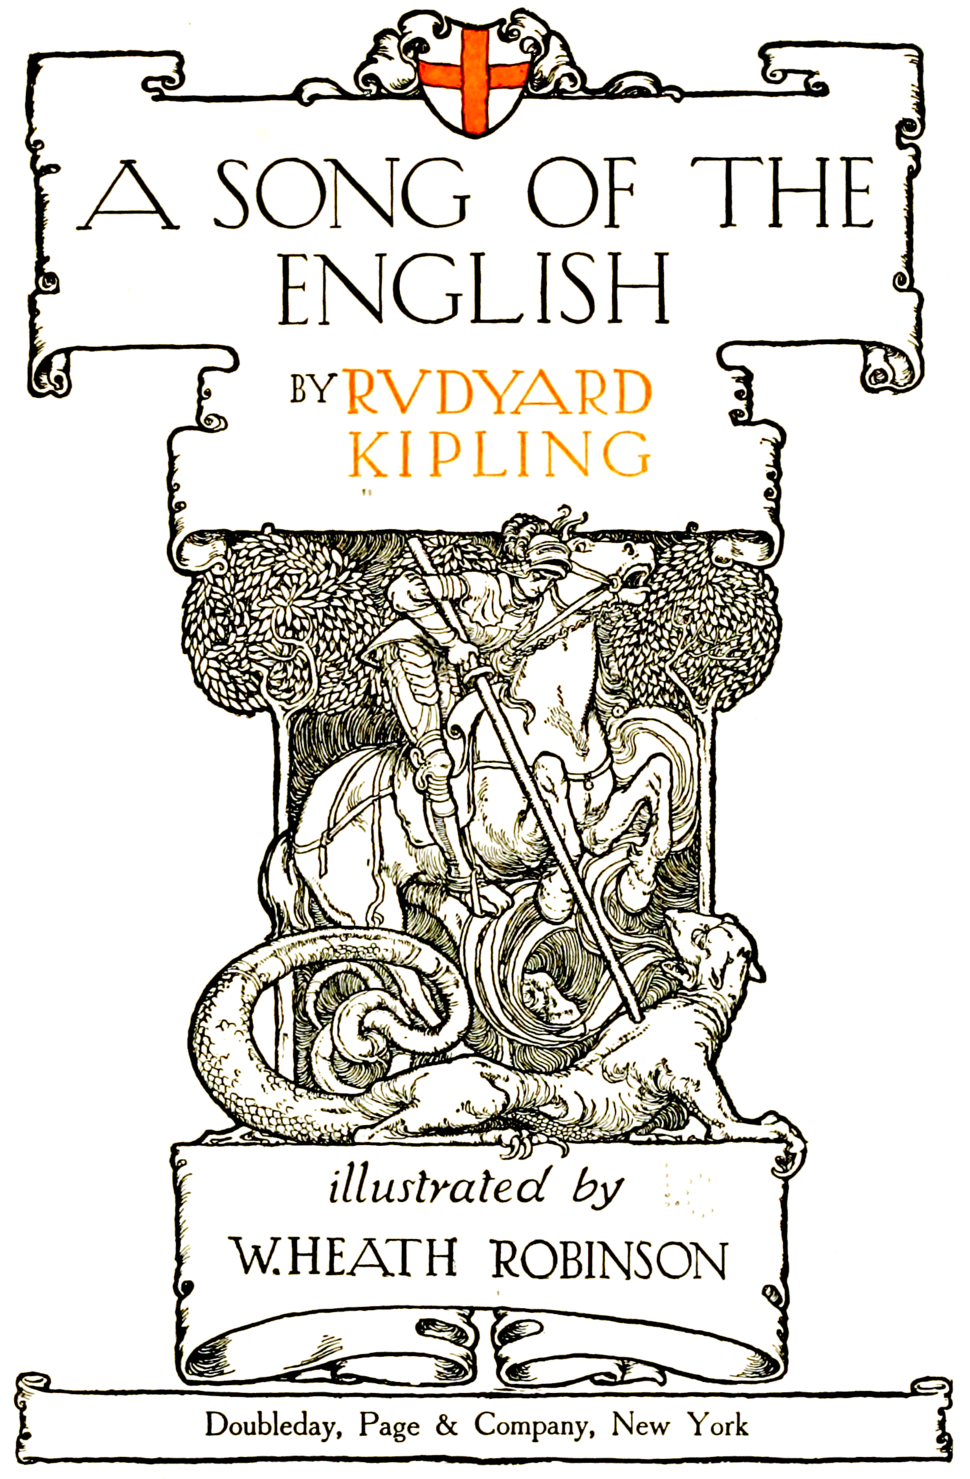 Title design of A song of the English (1909)